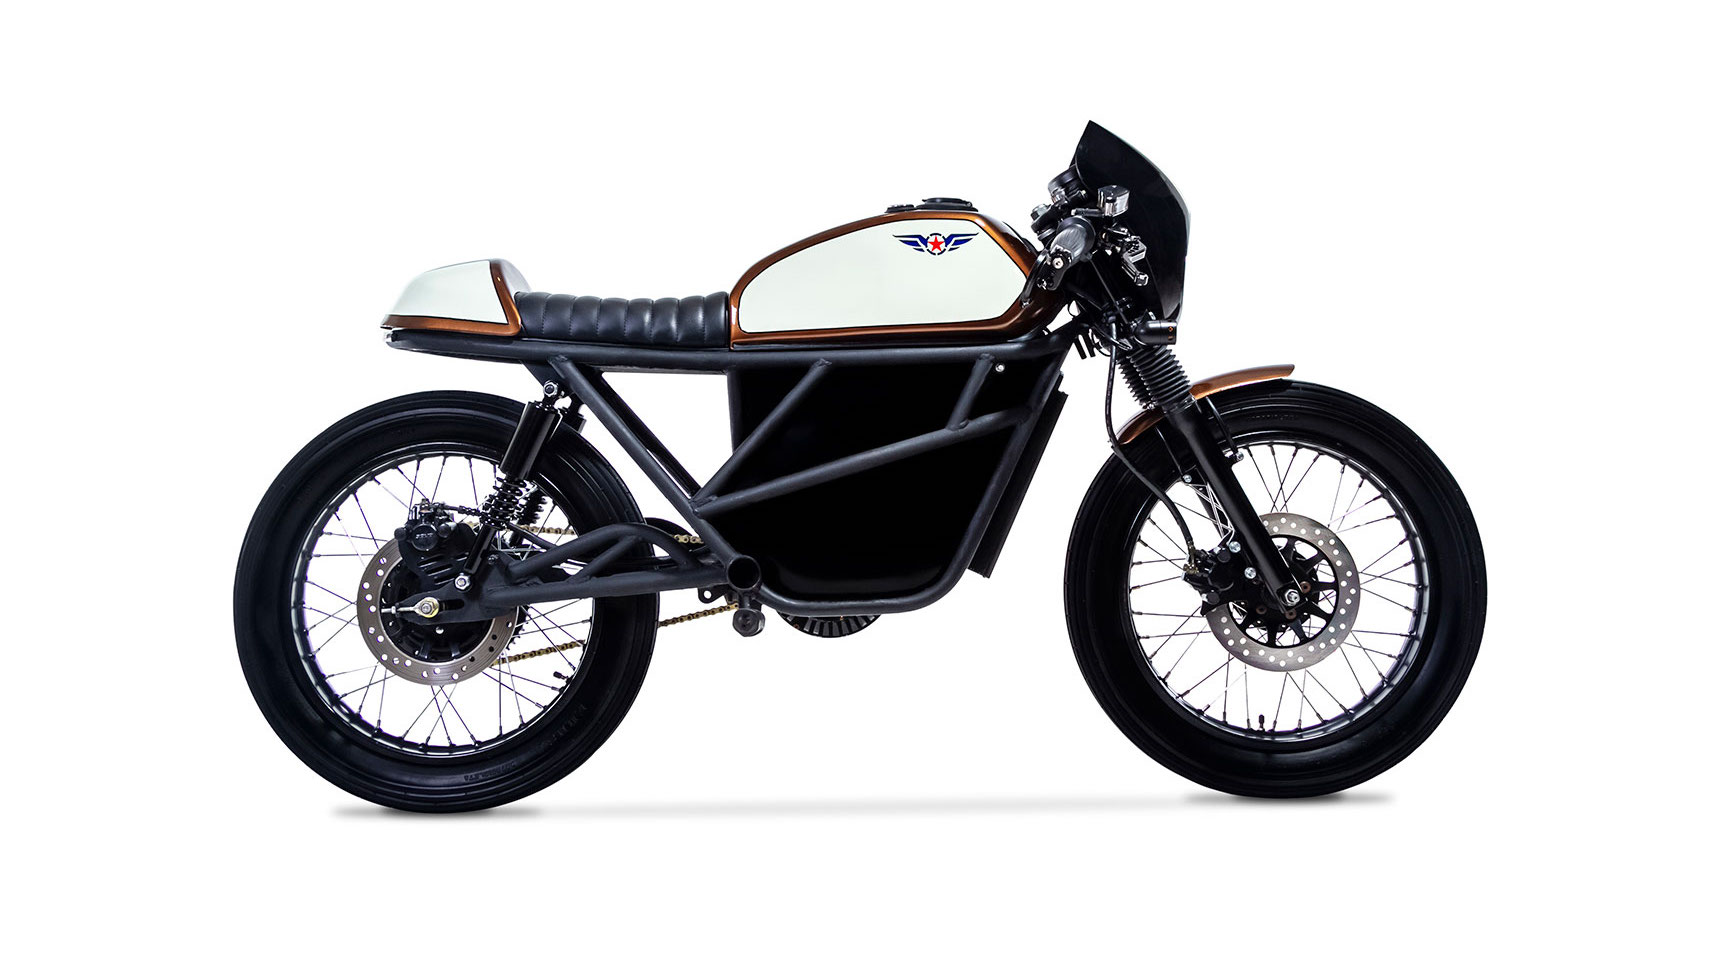 Fly Free Smart Motorcycles makes the best of both worlds with Smart Classic and Smart Desert